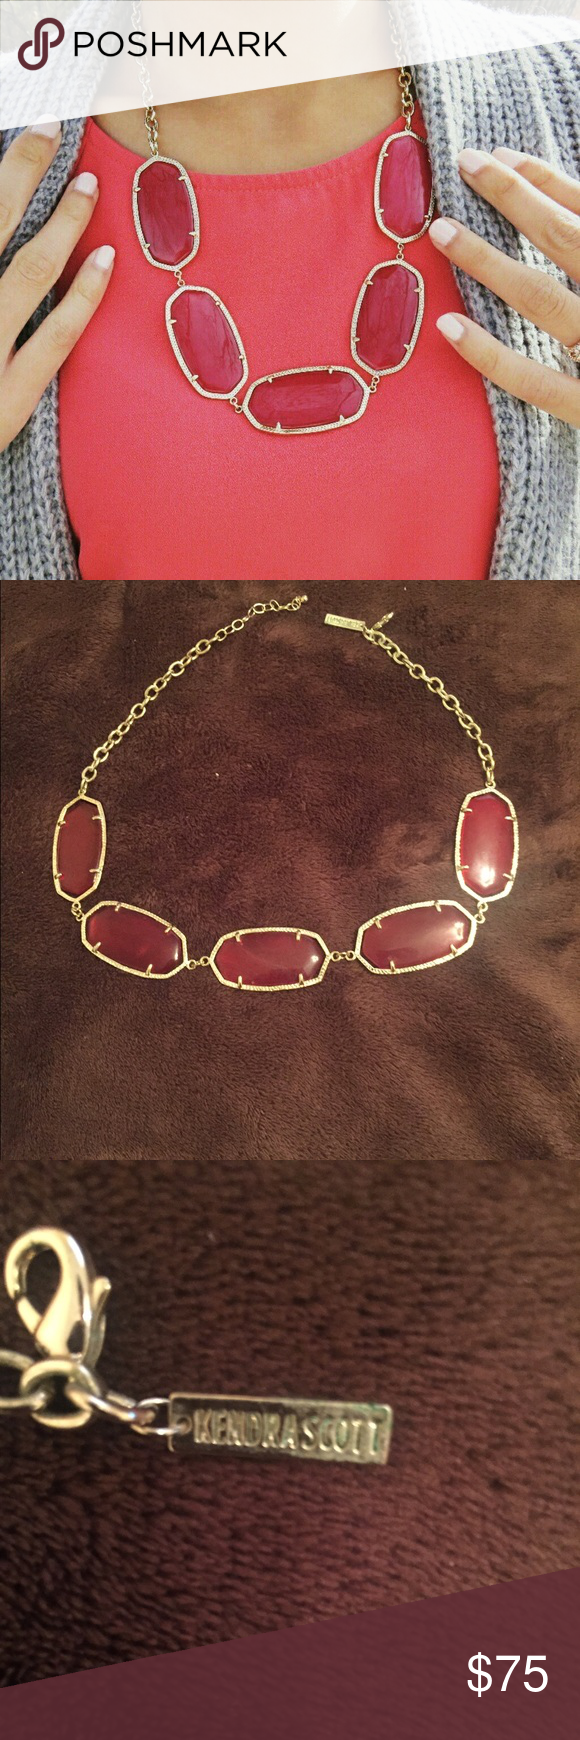 Kendra Scott Necklace Beautiful Kendra Scott Necklace with a bright red color that catches the eye. Kendra Scott Jewelry Necklaces